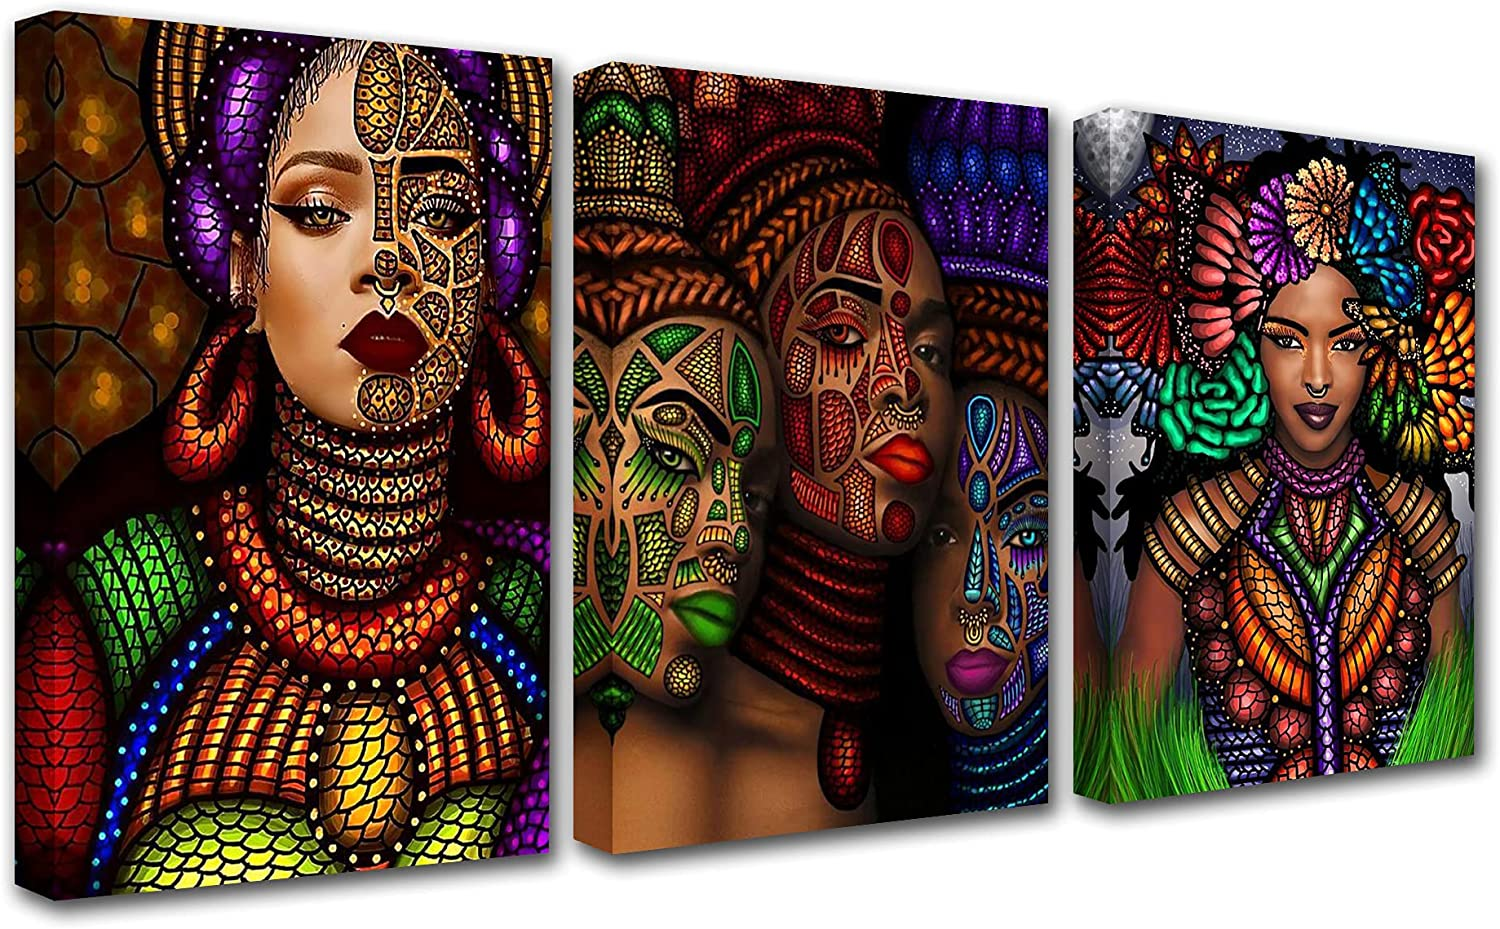 African Women Portrait Canvas Wall Art Living P 3 for Decor Room Discount mail order Price reduction